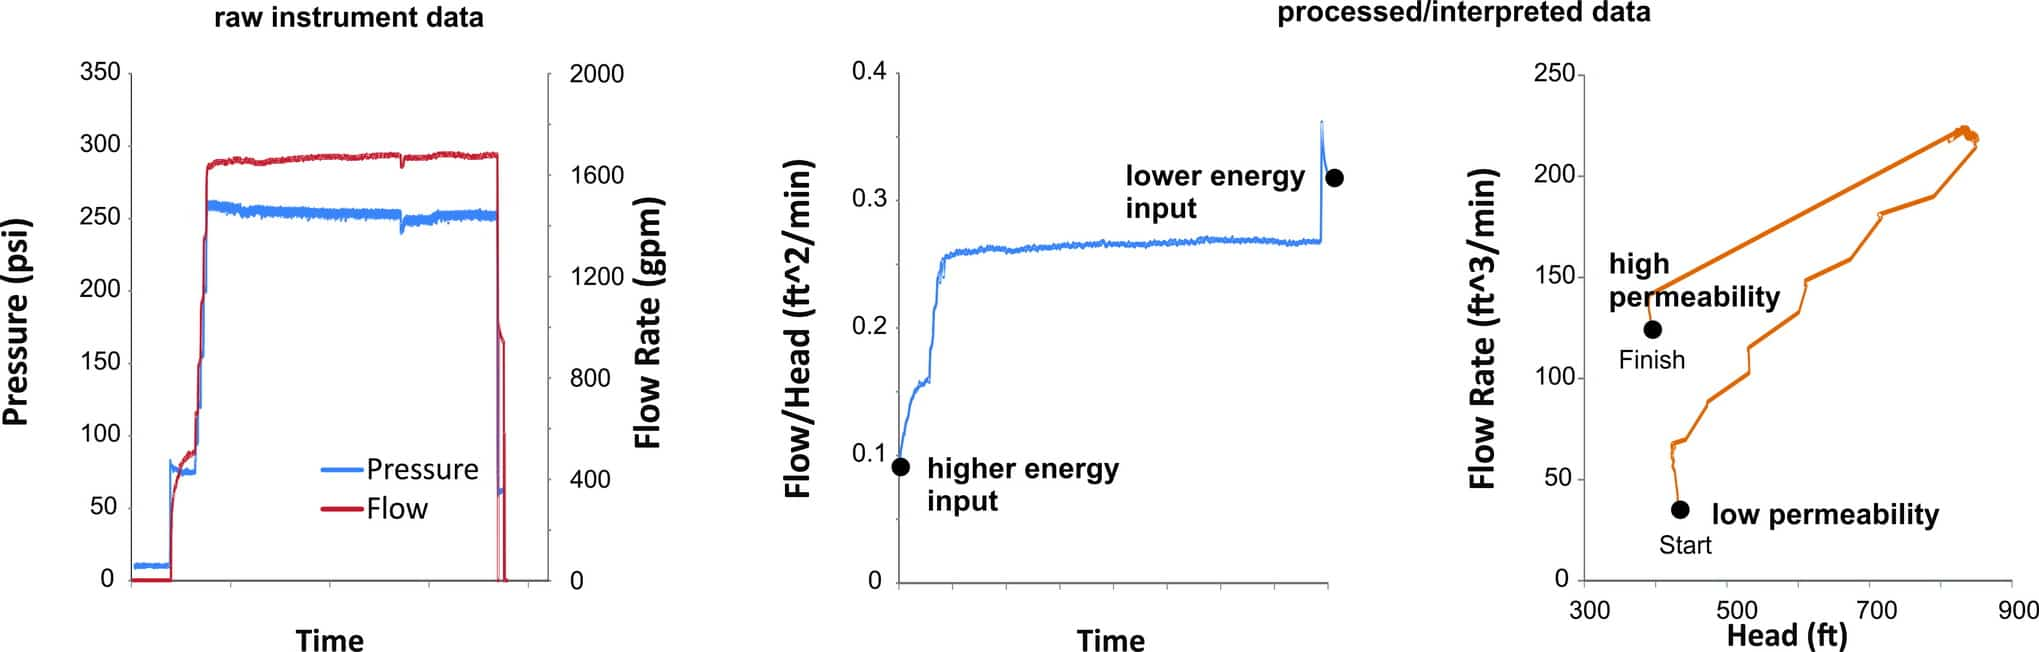 Metallurgical monitoring for enhanced metal recovery | Heap